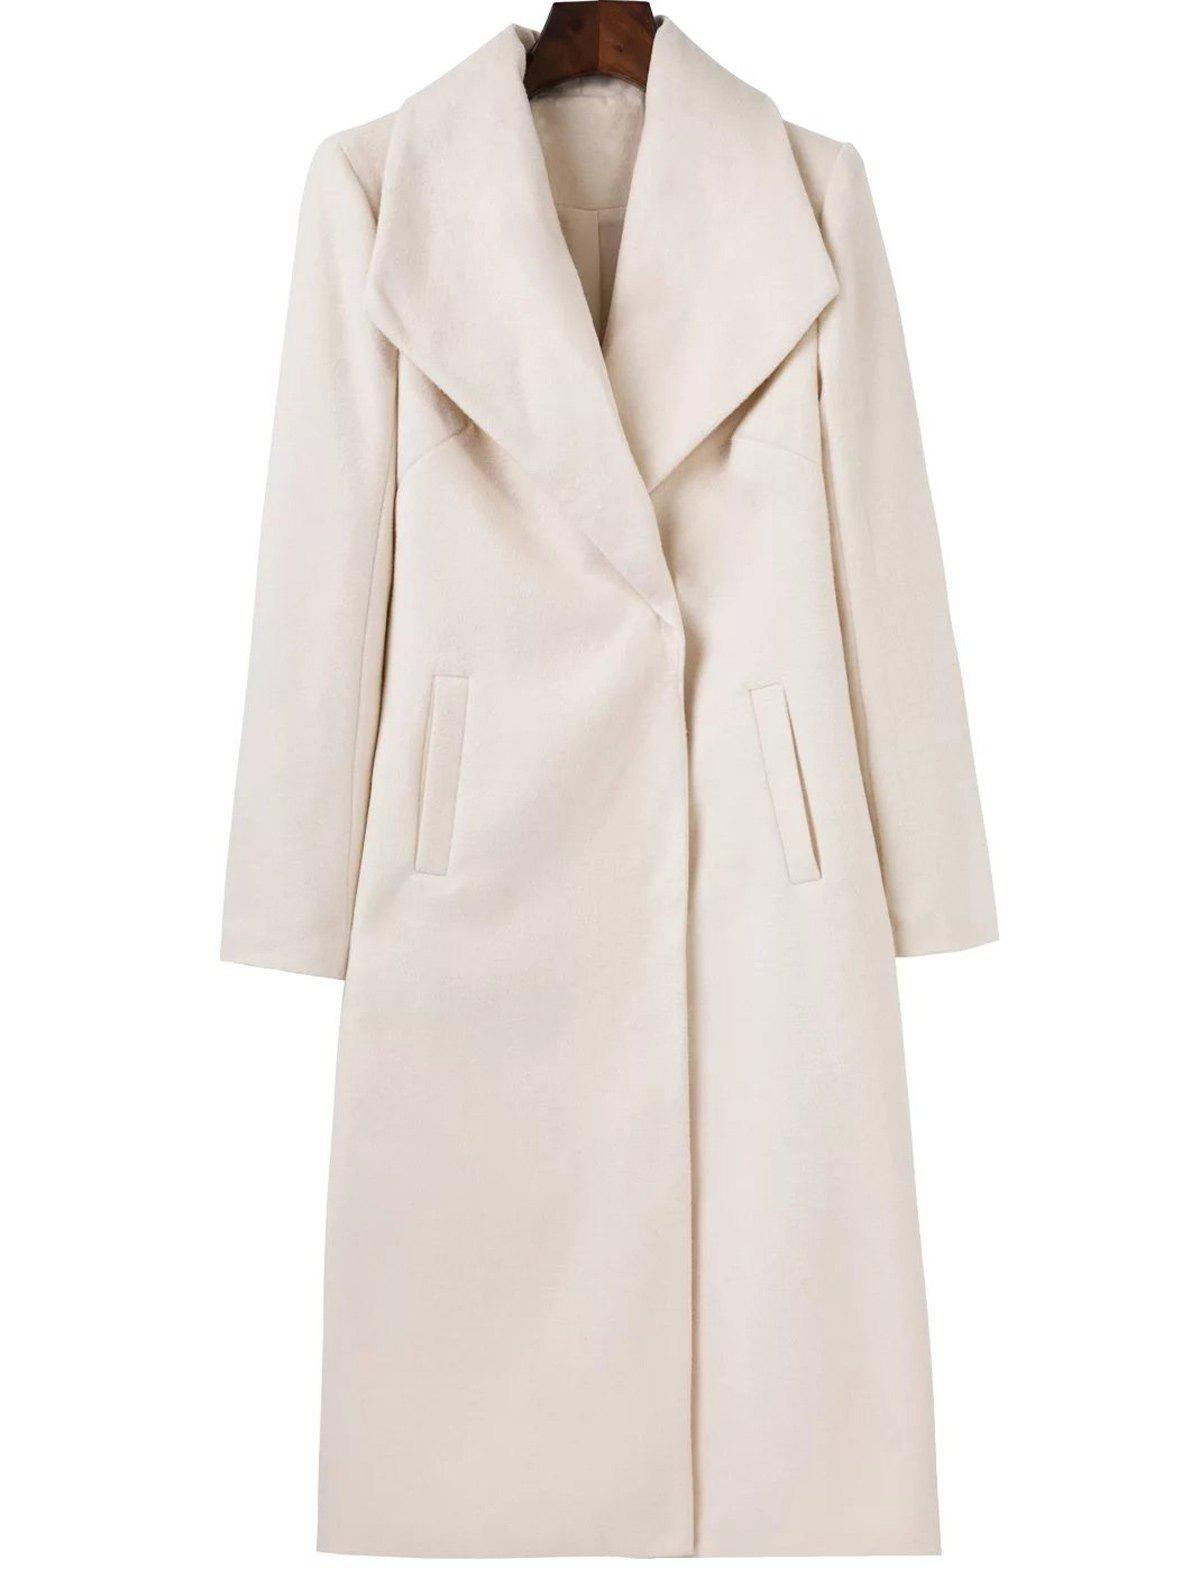 Long Wool Maxi Coat with Lapel - WHITE S